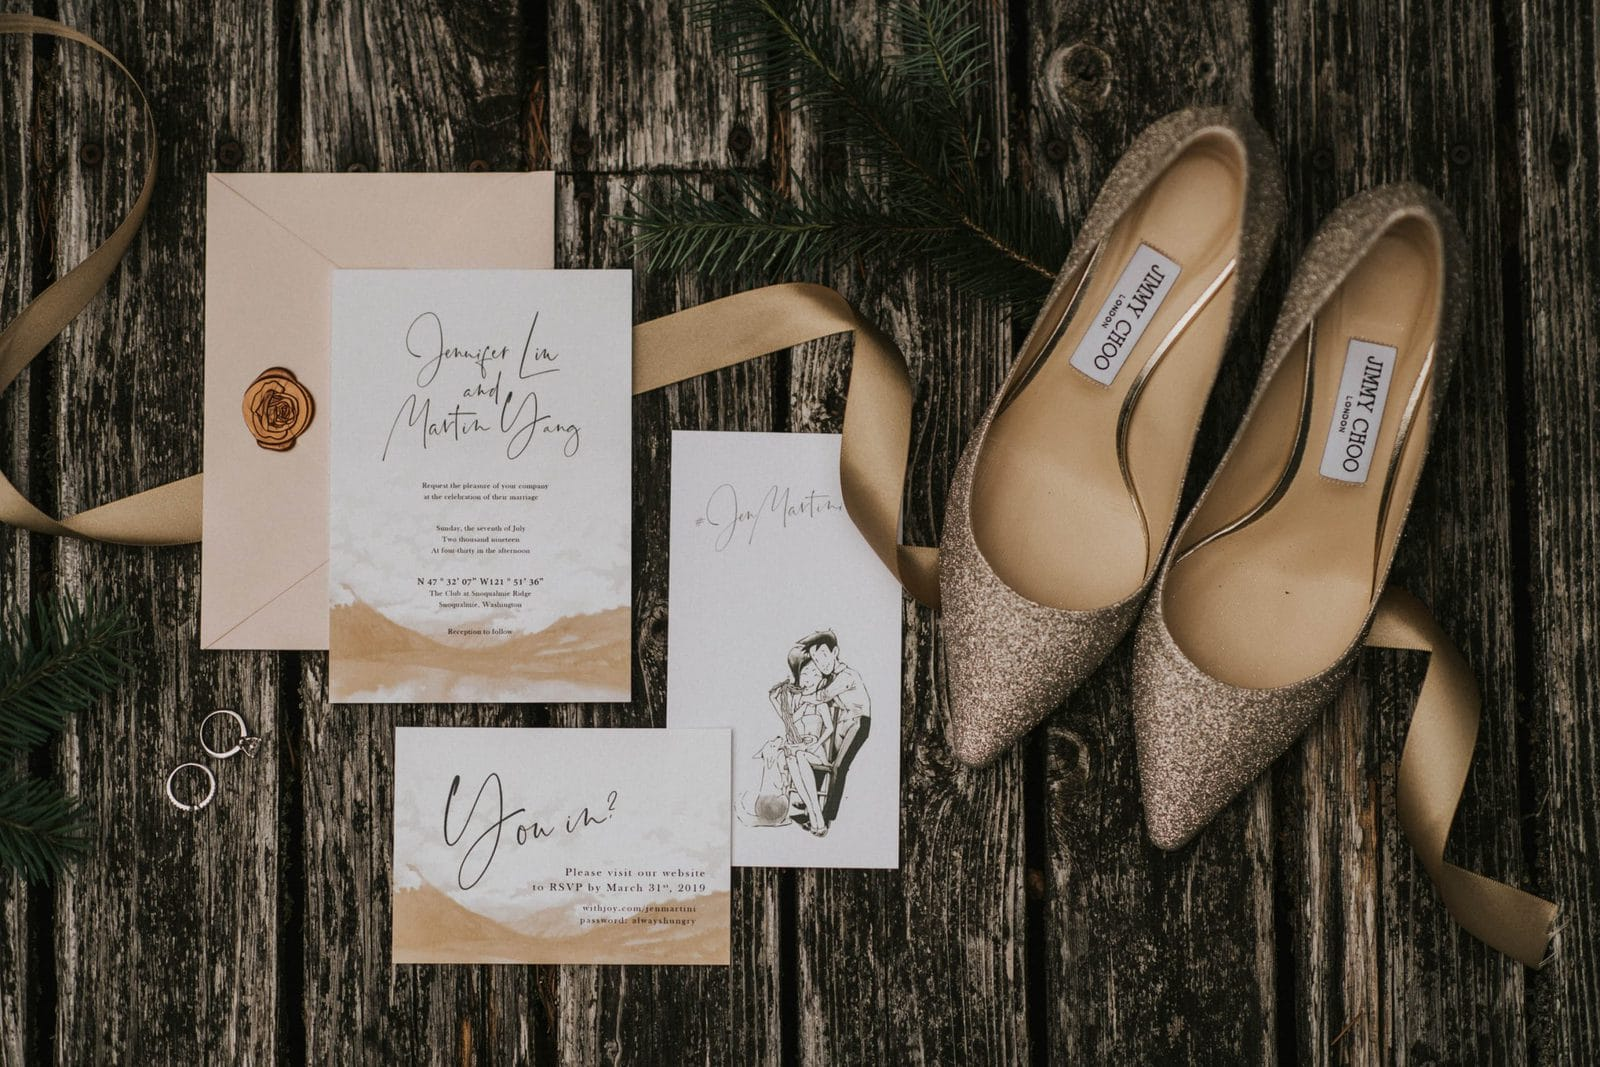 Wedding details: shoes, invitations and rings on wood floor